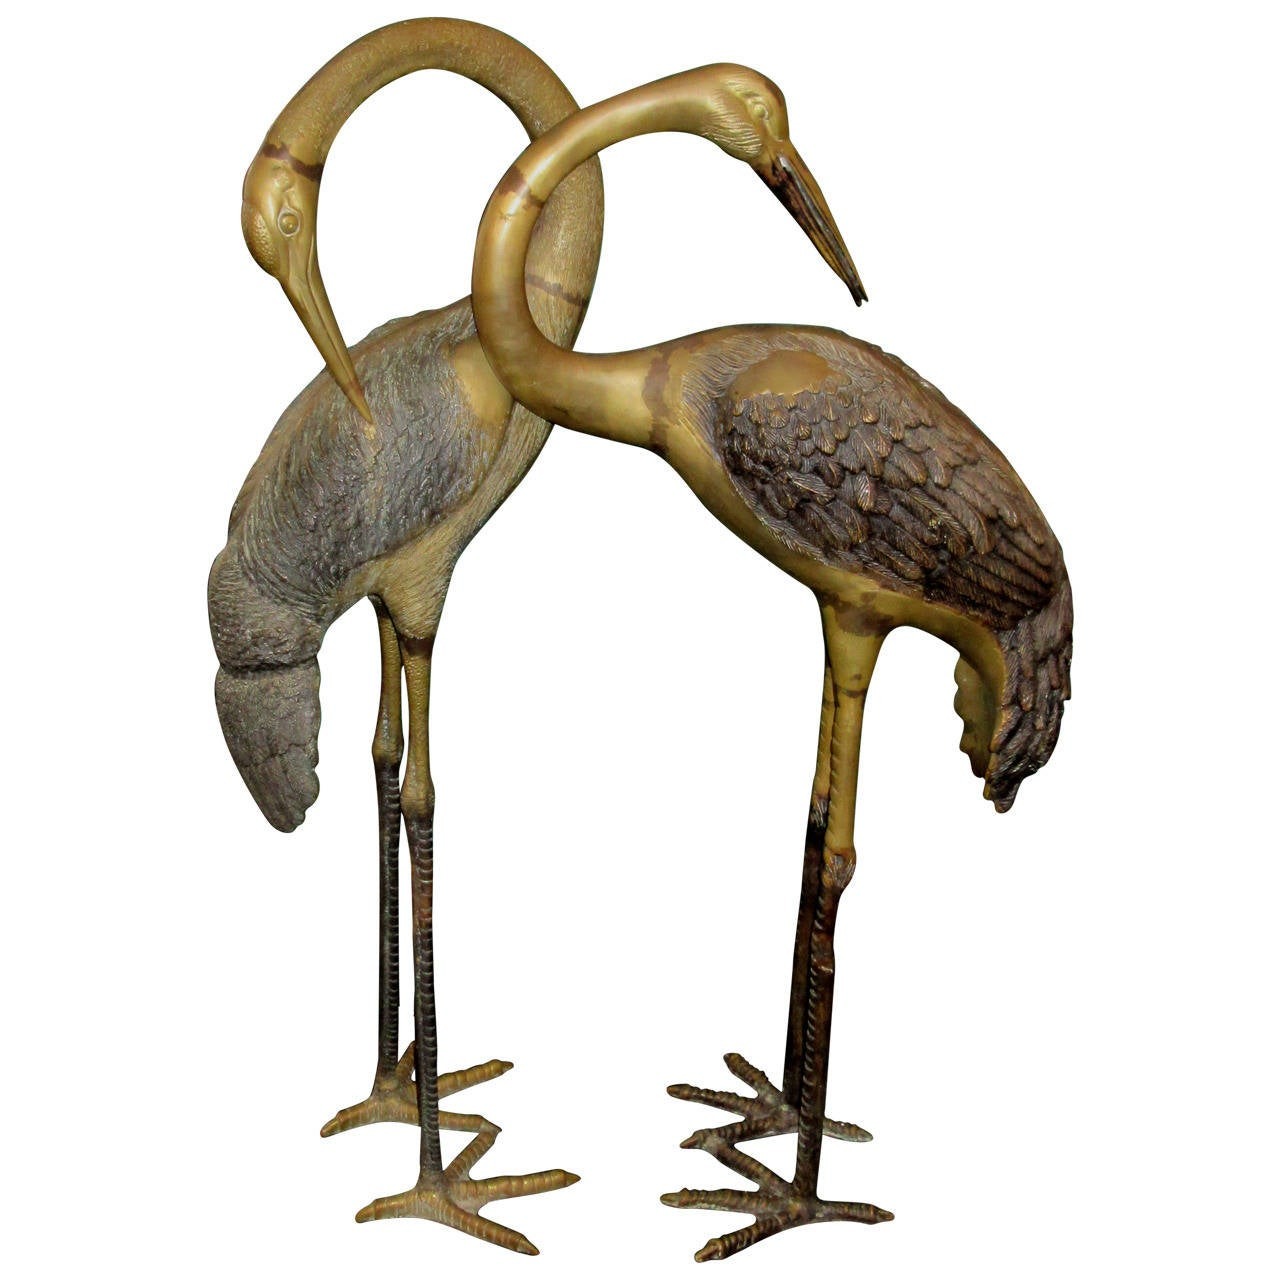 Pair of Large Patinated Brass Sculptures of Herons